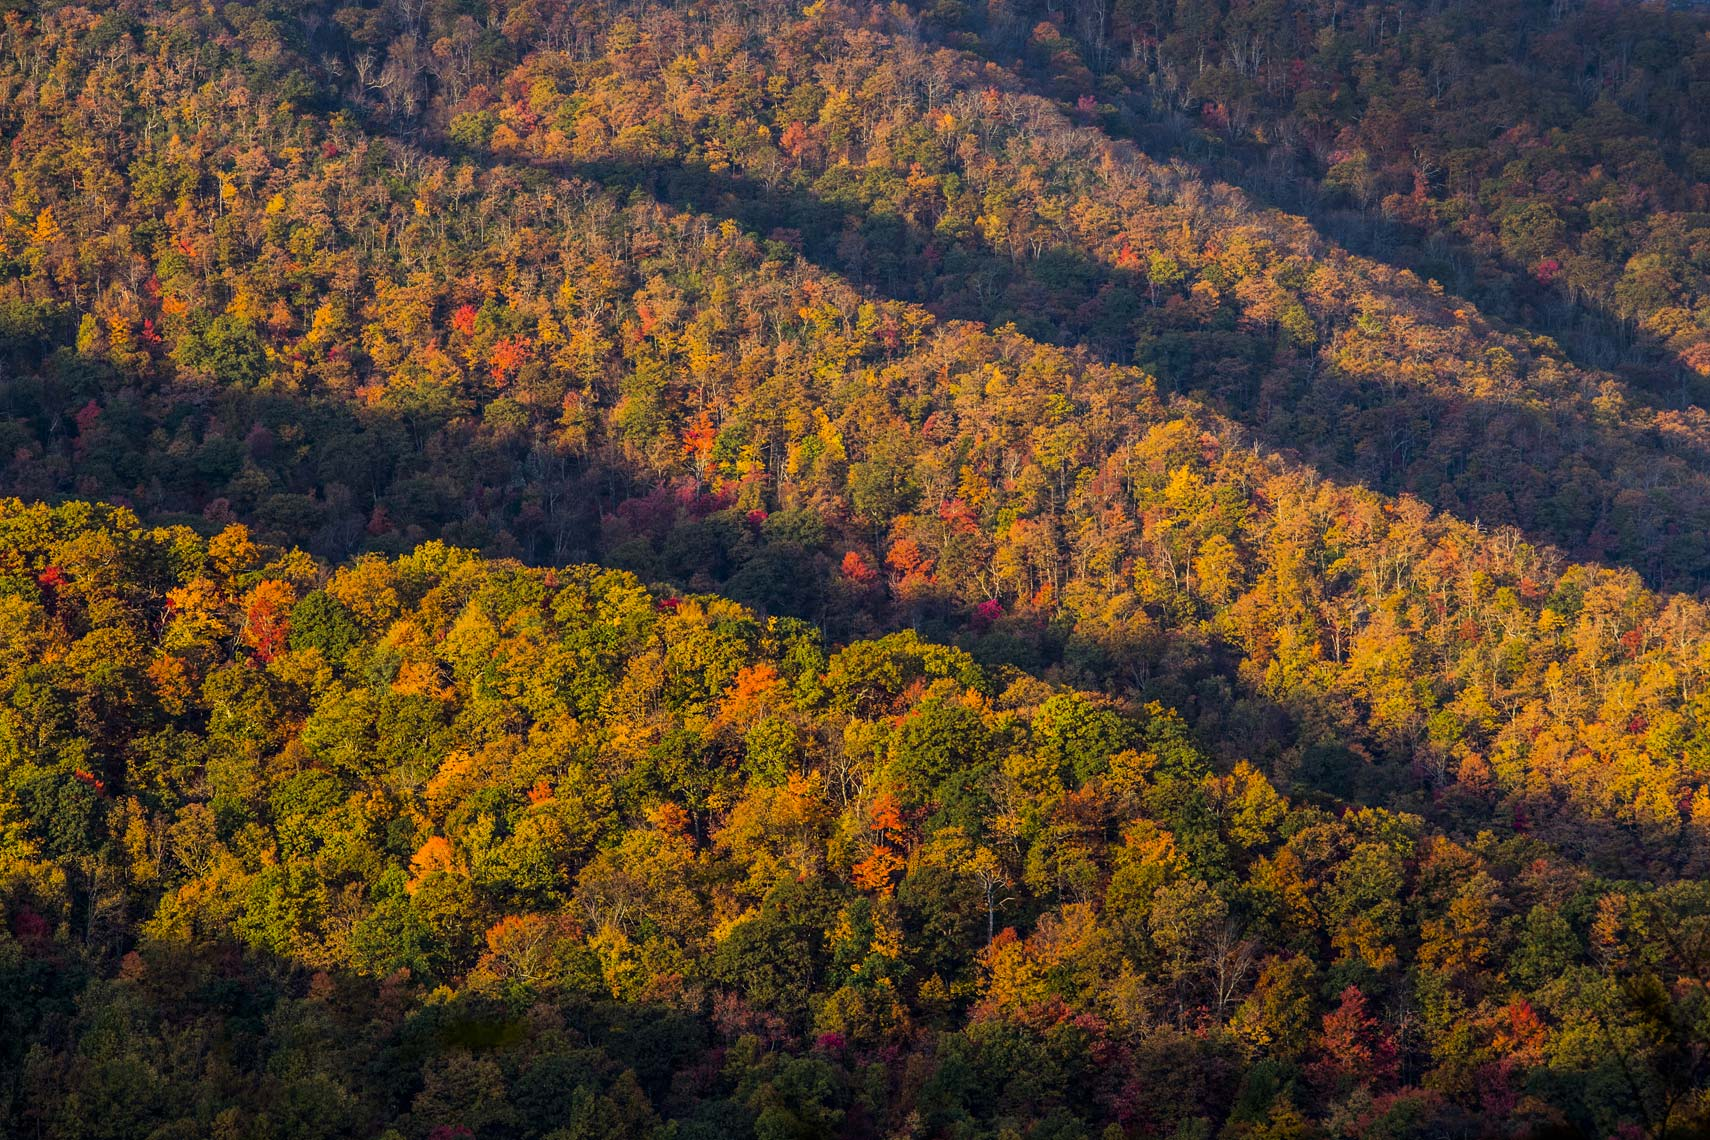 Ridge lines along the Appalachian Mountains